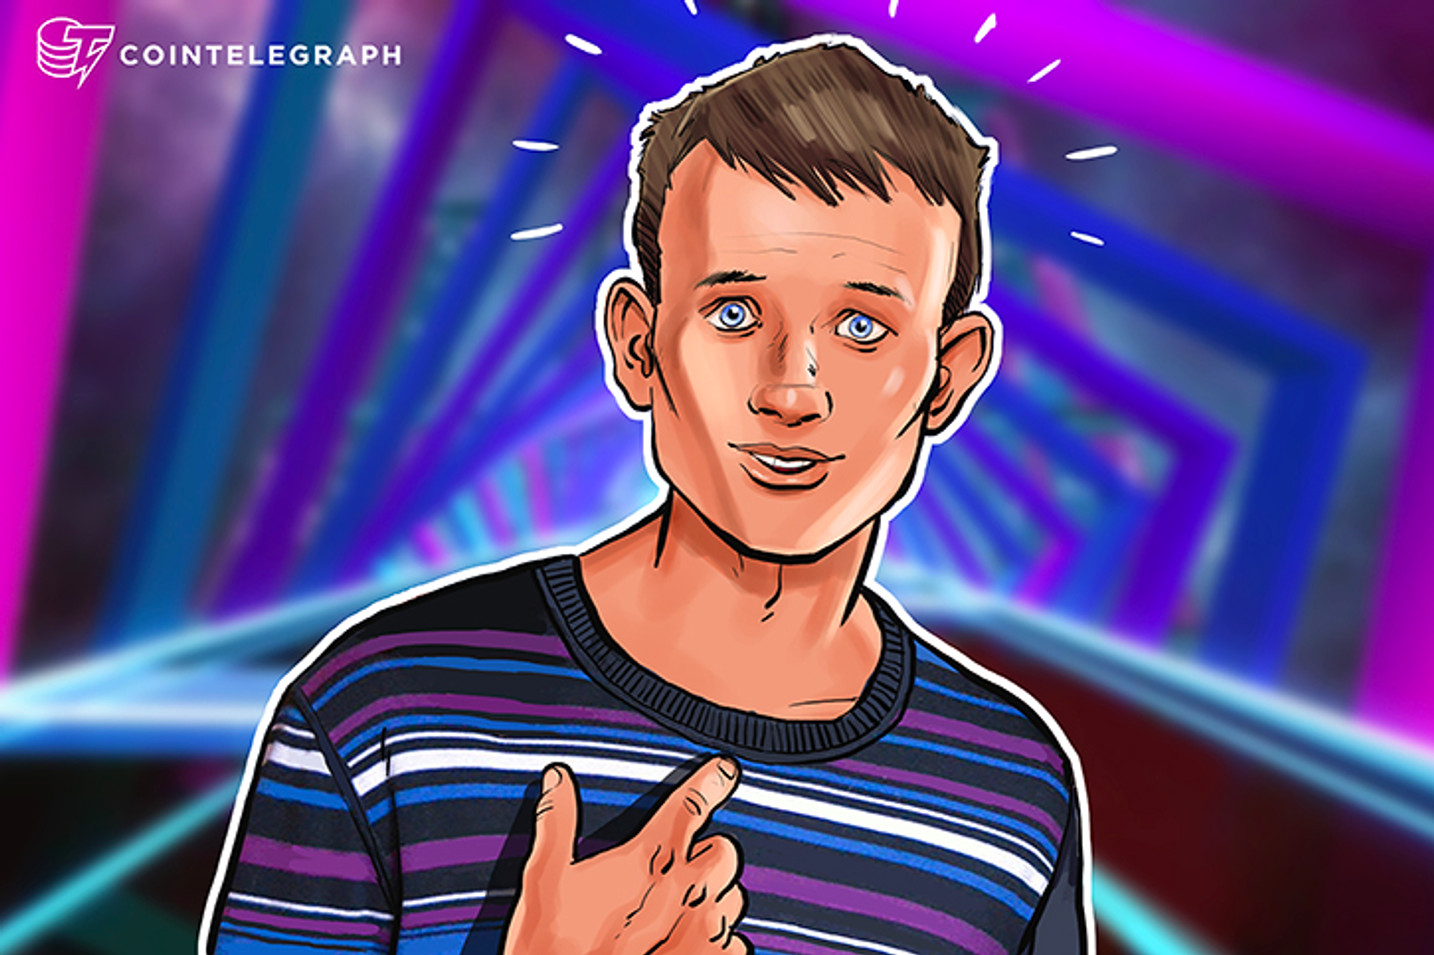 Ethereum Founder Vitalik Buterin One of Bloomberg's Top 50 Most Influential People